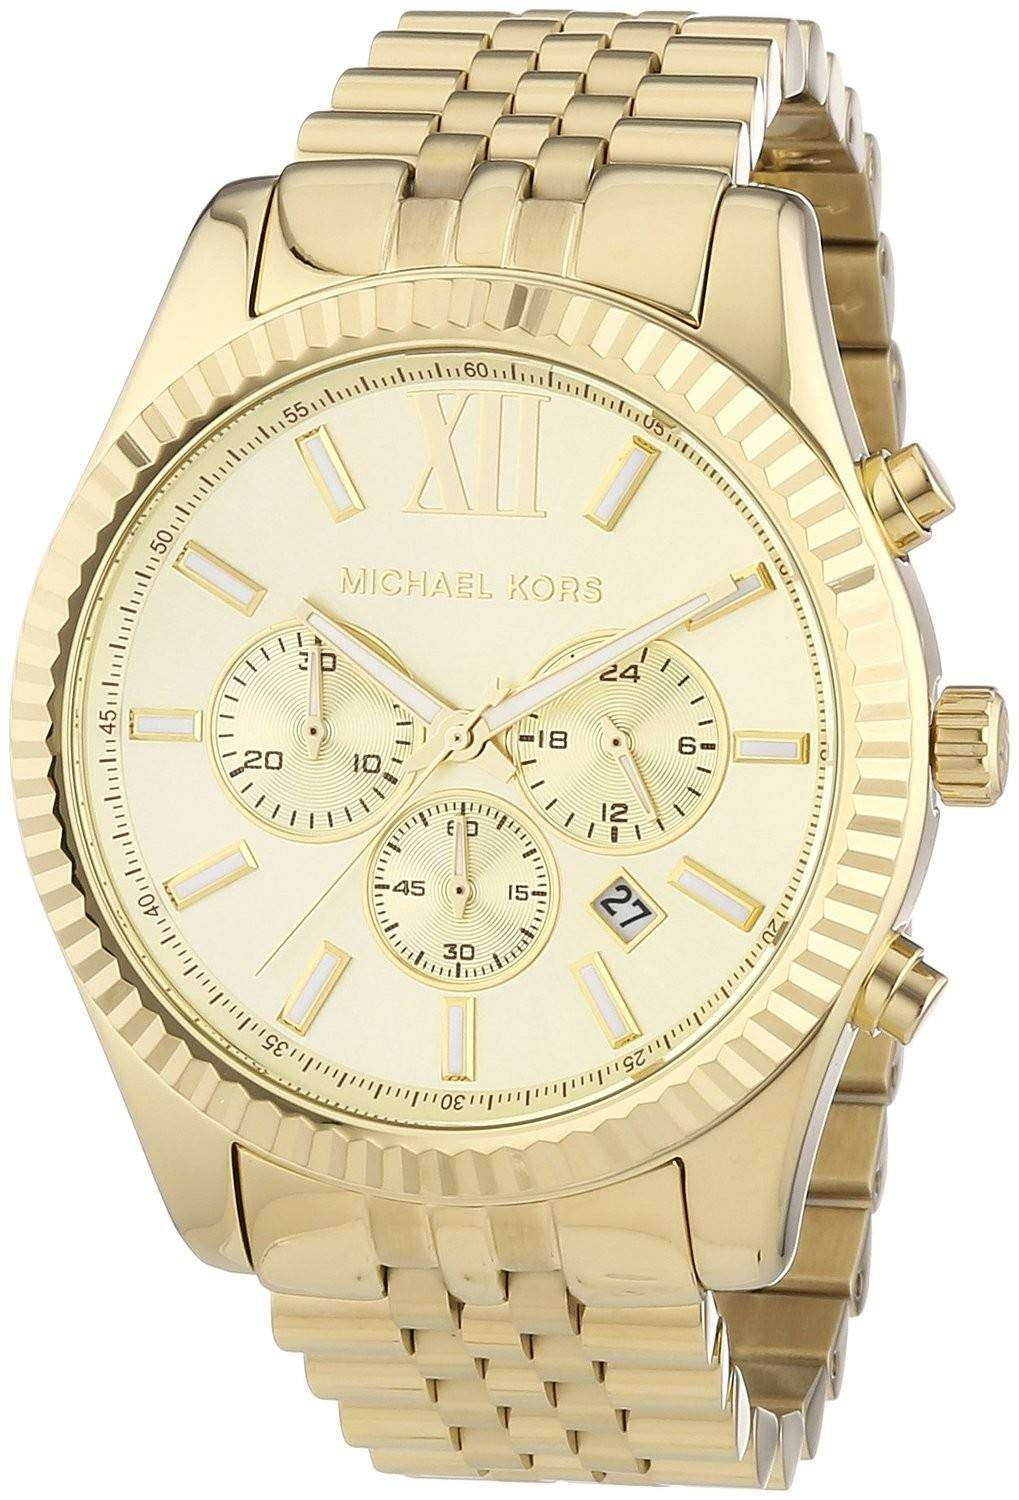 Buy Michael Kors MK Gold-Tone Men's Watch and other Wrist Watches at techriverku3.gq Our wide selection is eligible for free shipping and free returns.